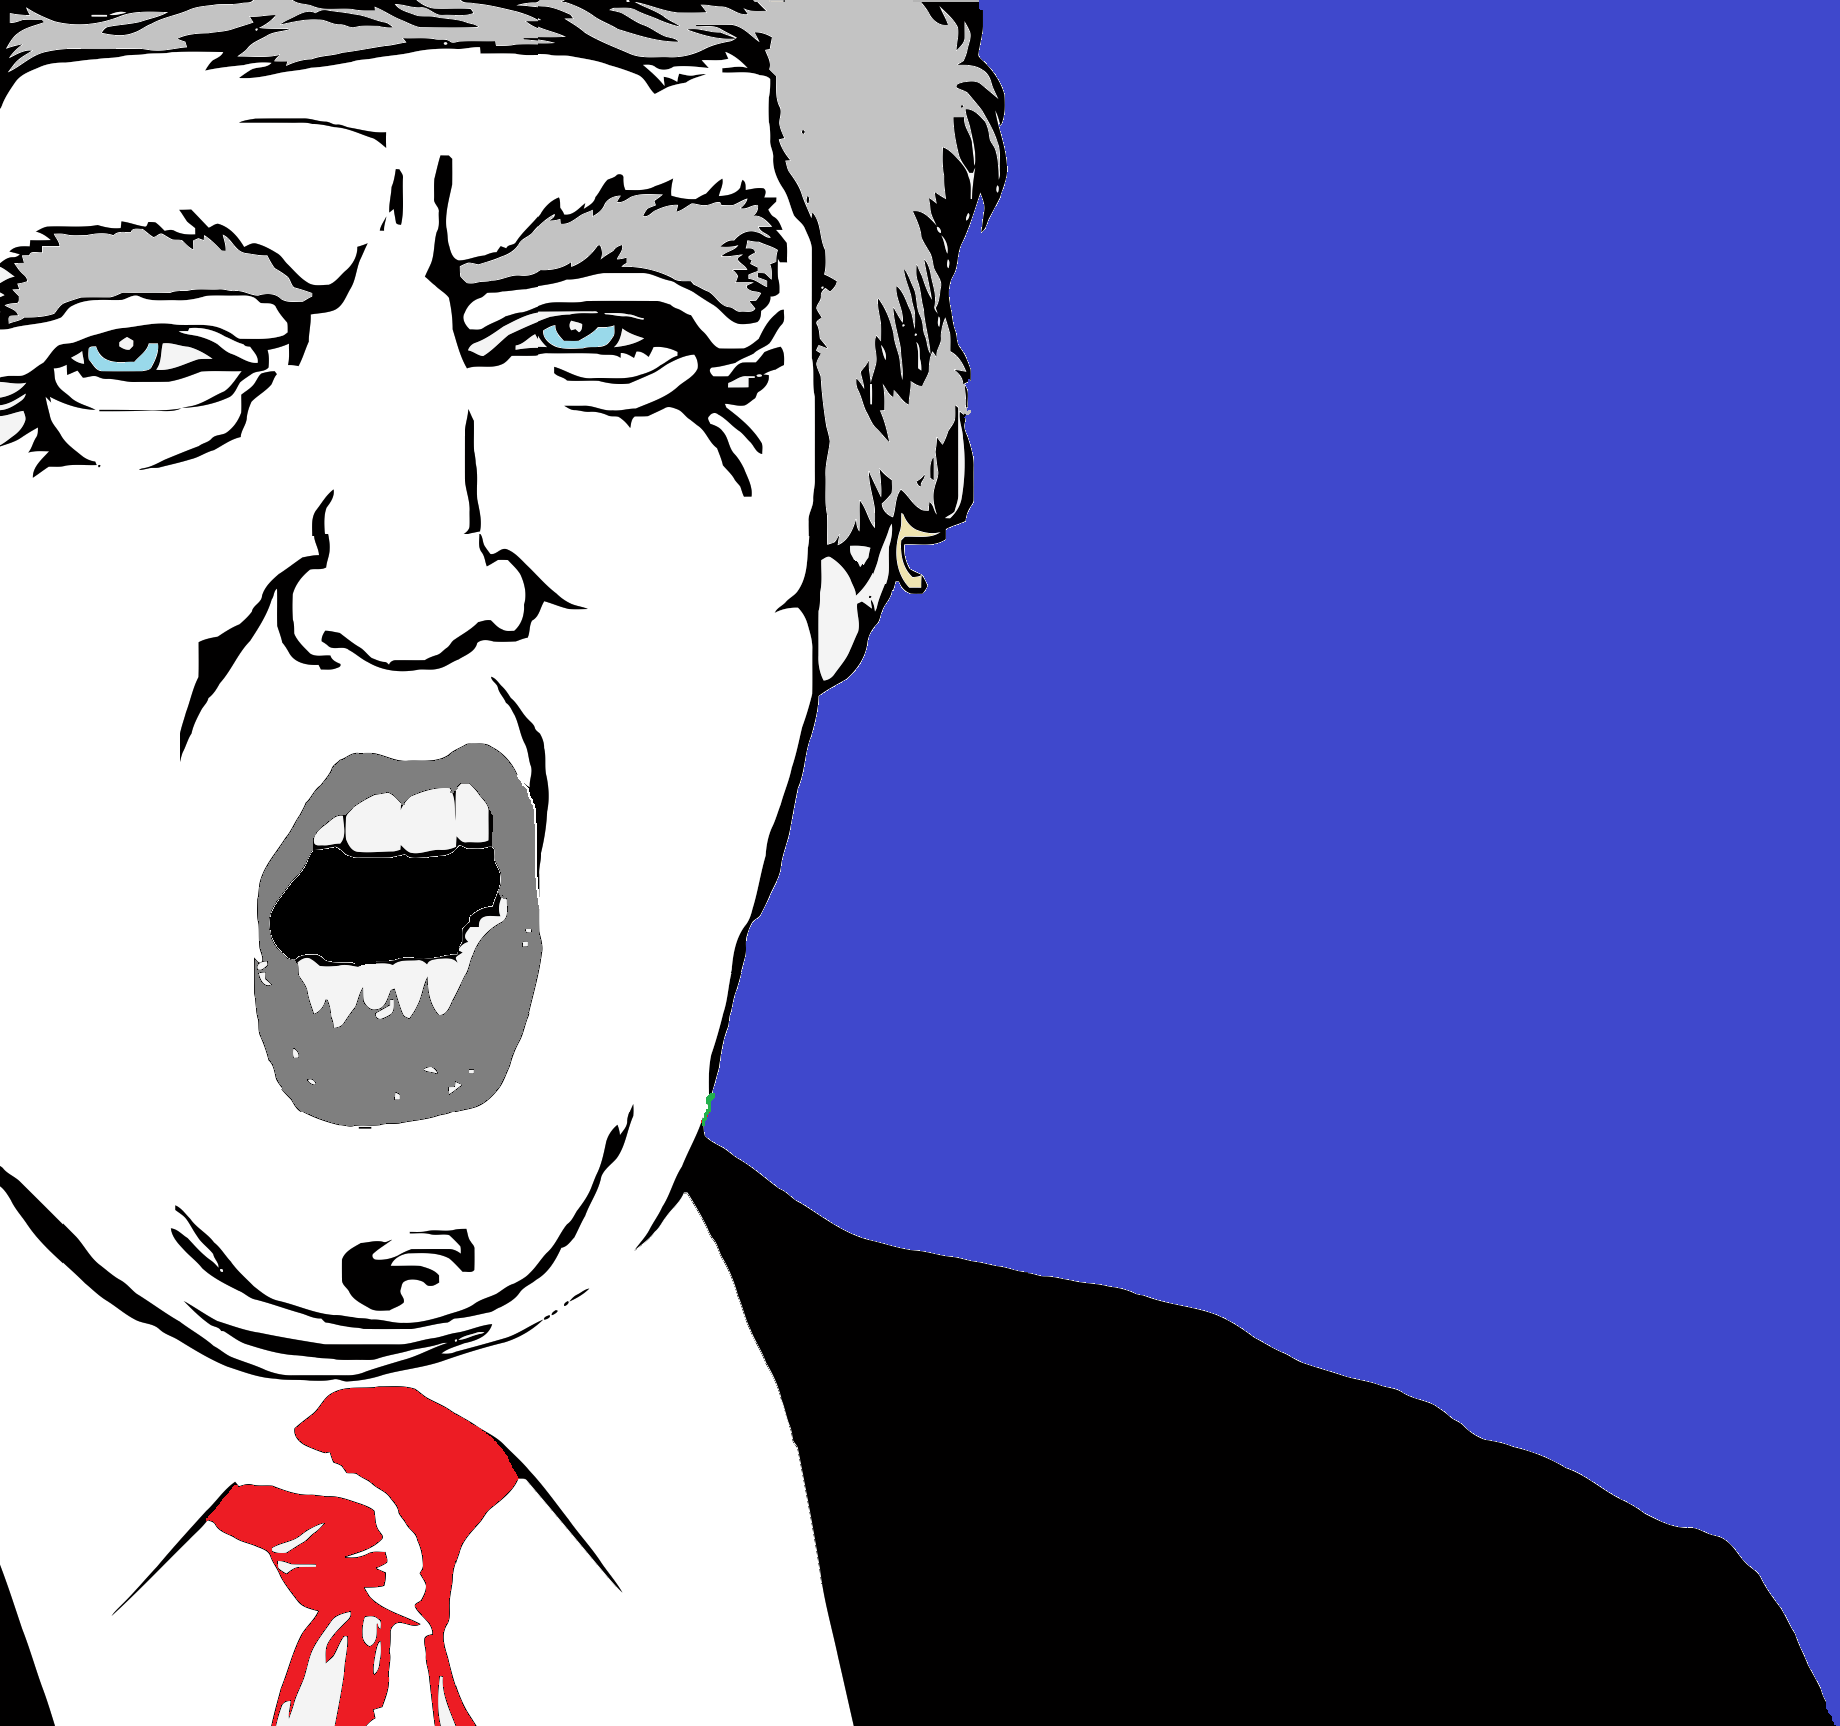 Retrato digital de Donald Trump